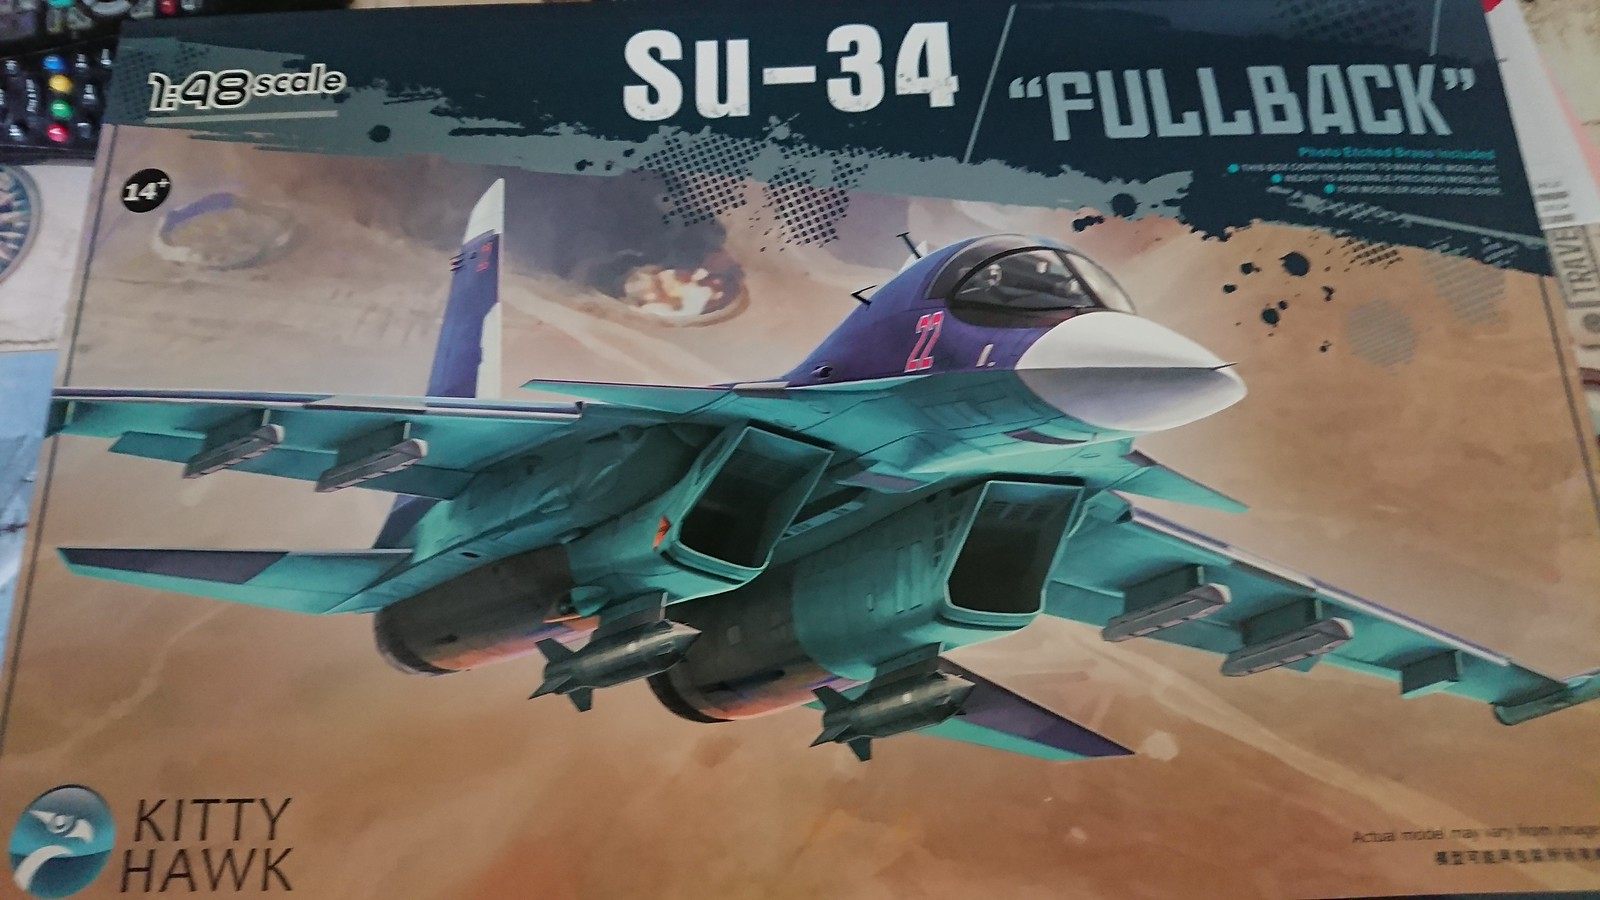 Kitty Hawk Su-34  1/48 32924249147_b25d83915e_h